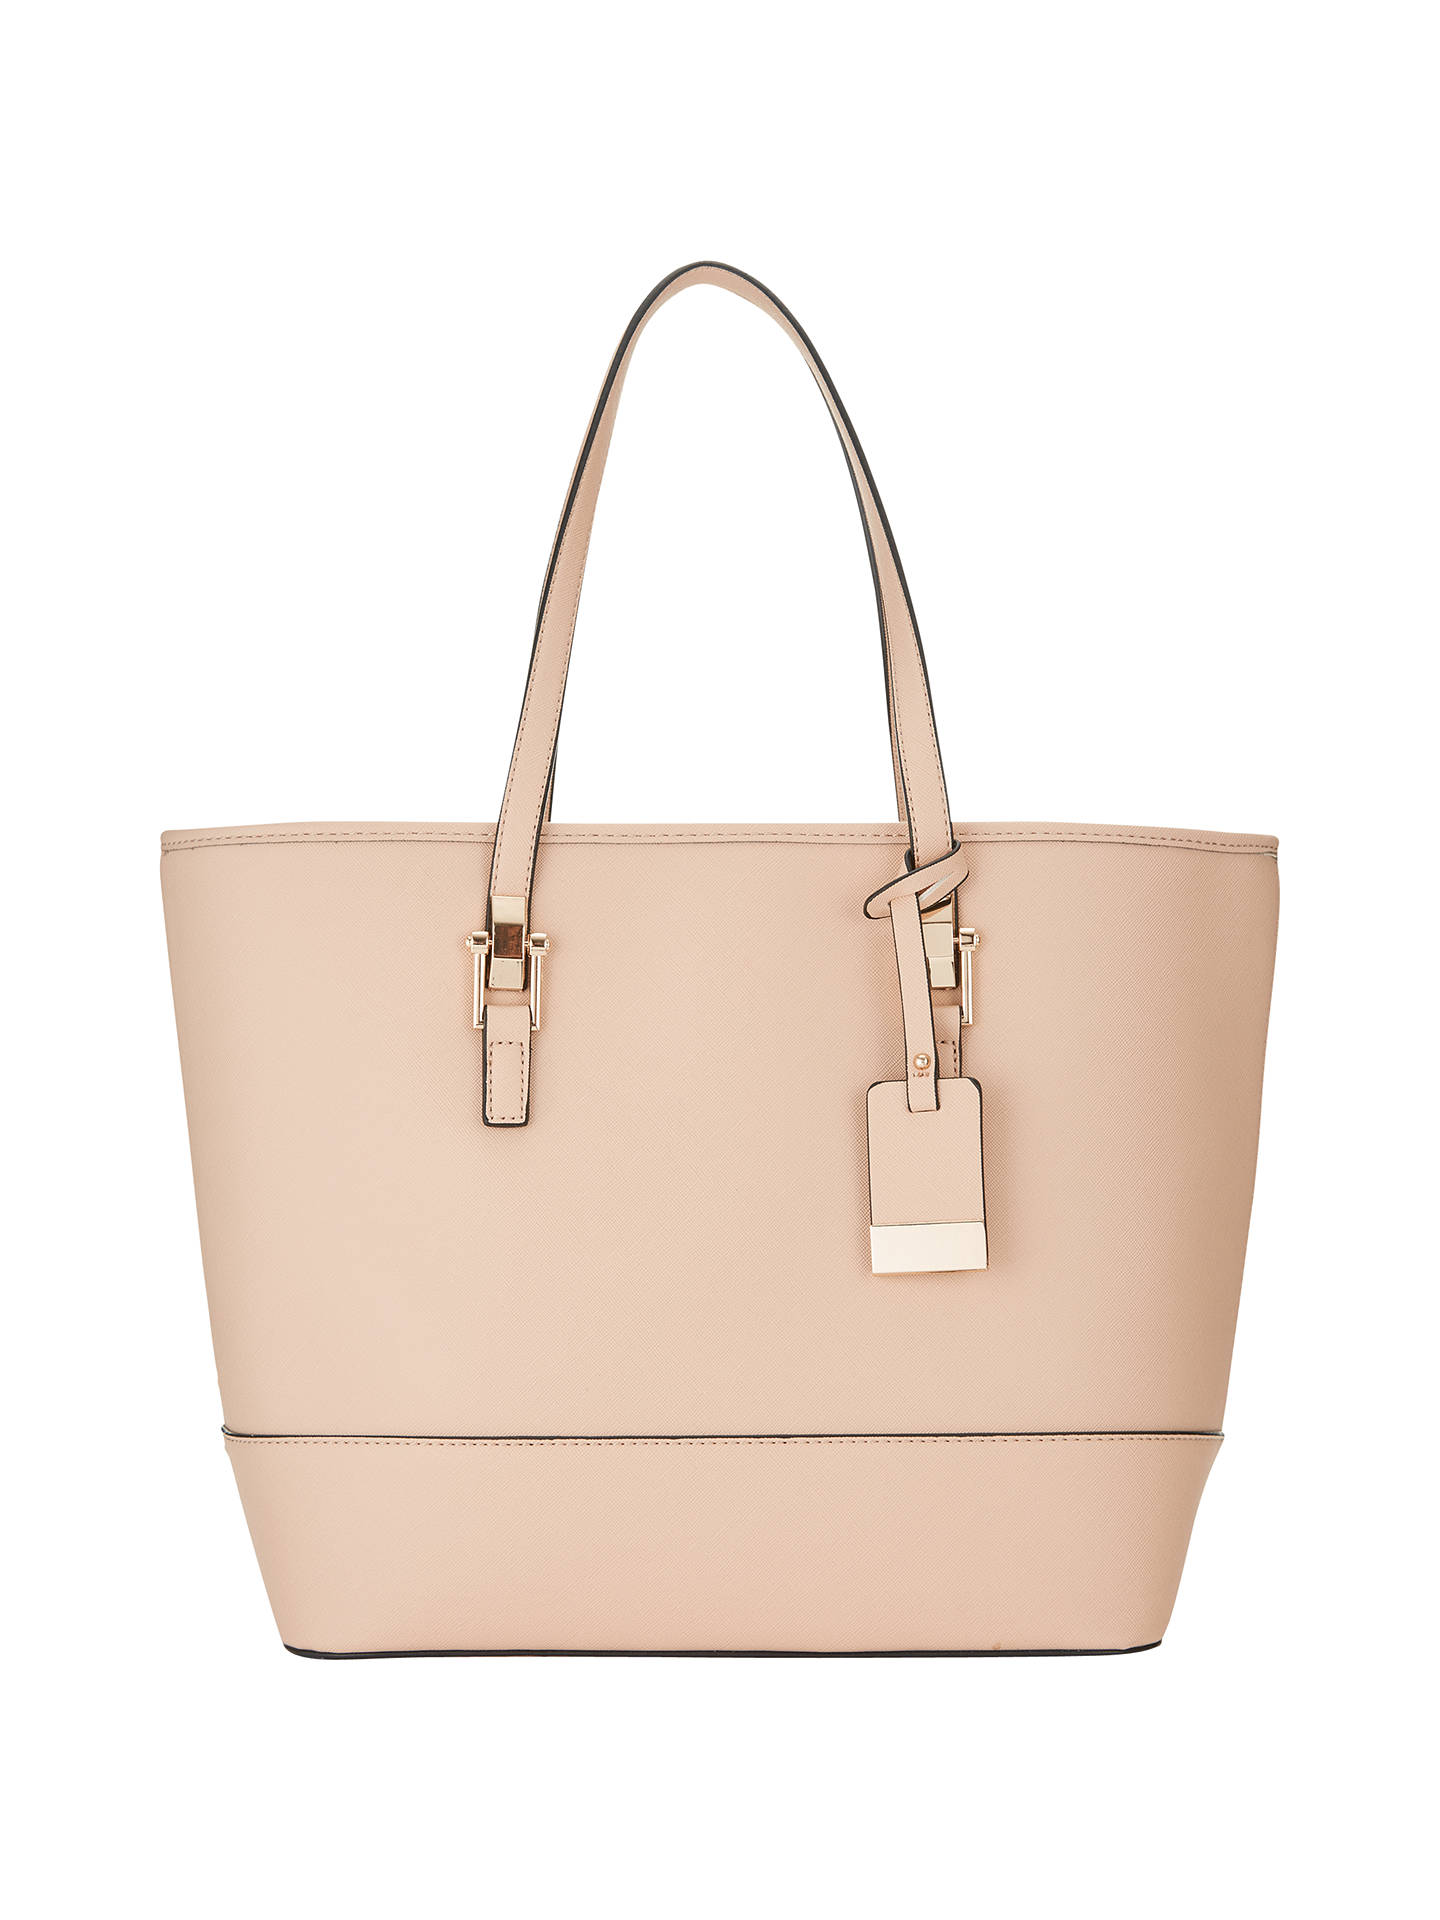 Miss Selfridge Scratchy Tote Bag Online At Johnlewis